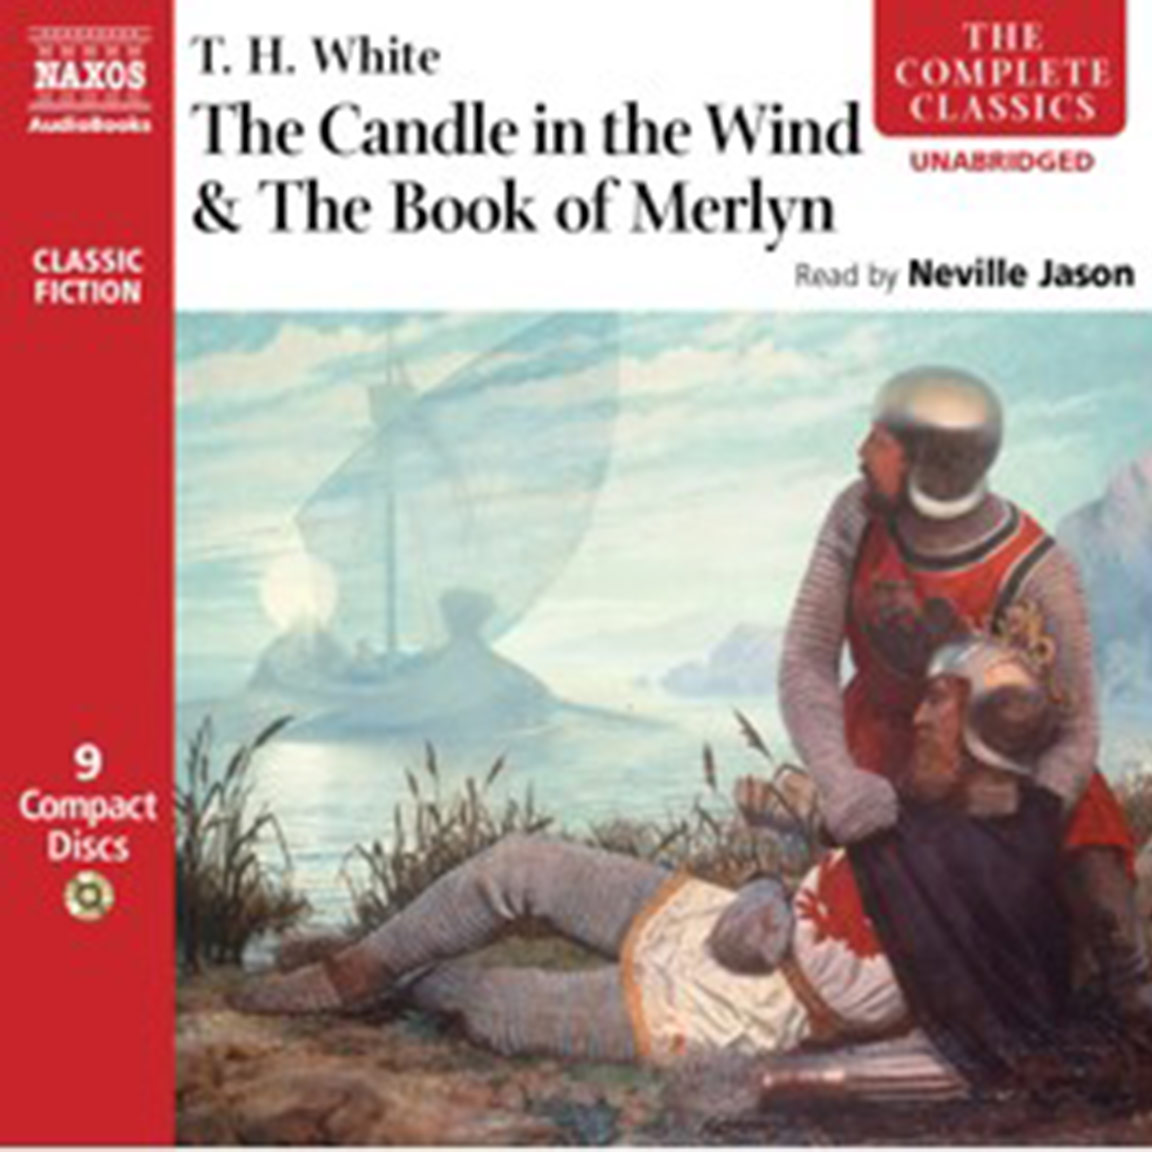 Candle in the Wind & The Book of Merlyn